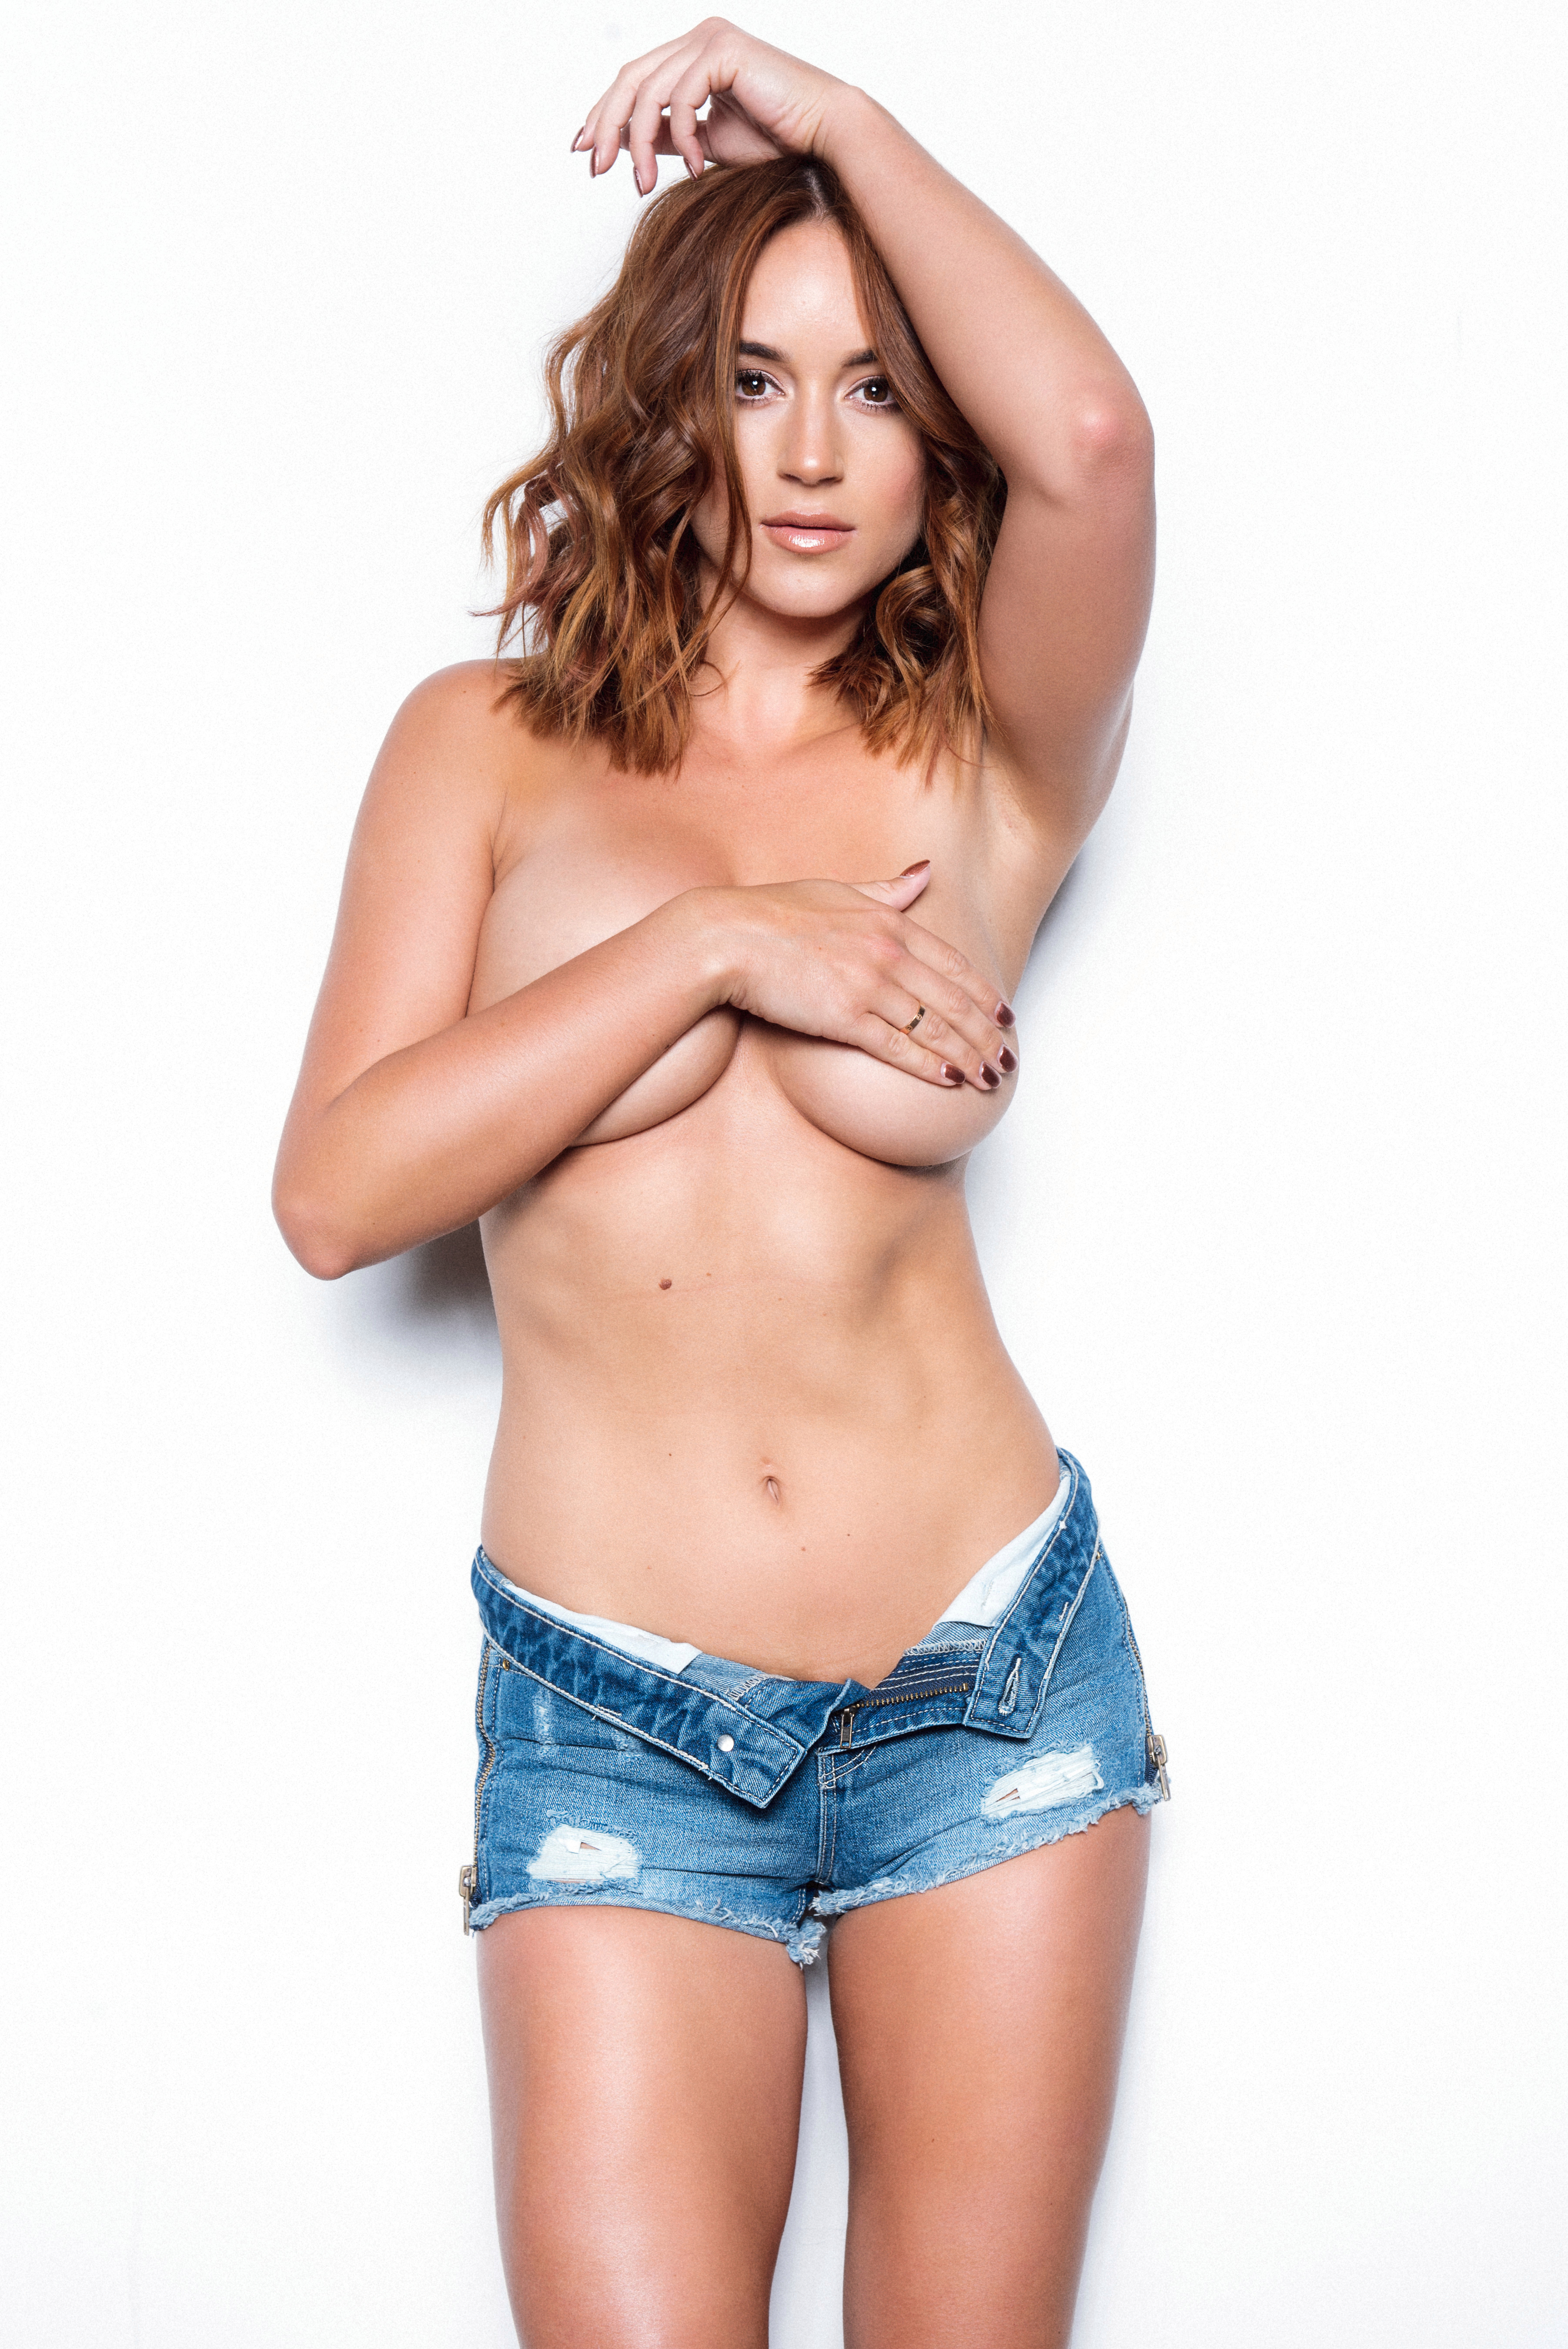 How Rosie Jones Went From Taking Page 3 Pics To Becoming Mrs Pertaining To The Sun Page 3 Girls 2020 Calendar